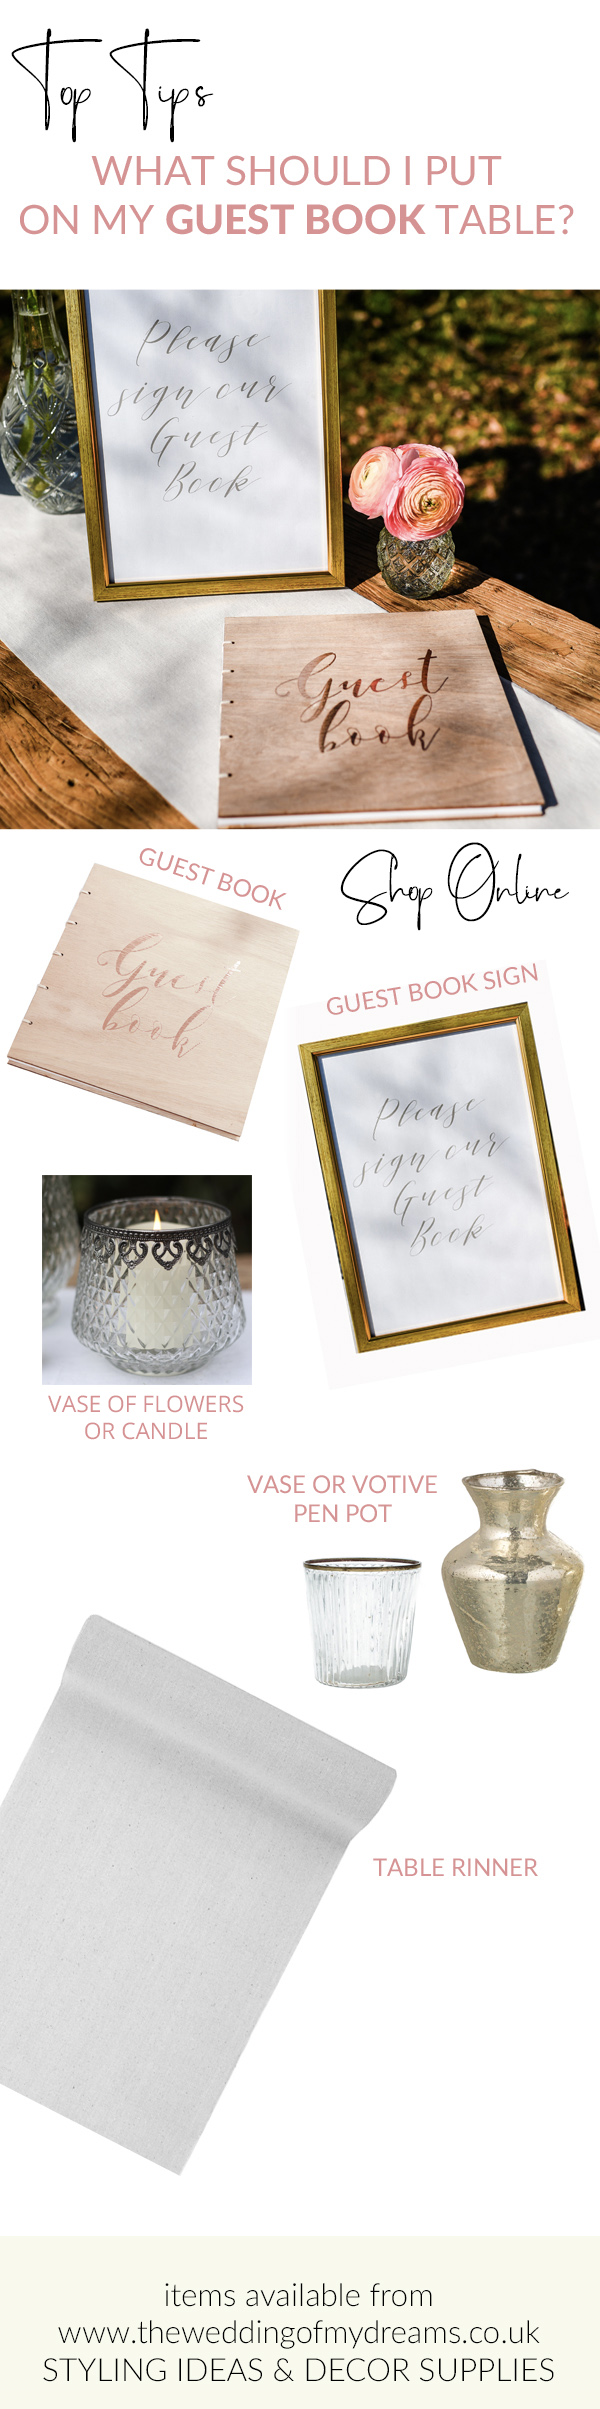 What do you need for your wedding guest book table items available from The Wedding of my Dreams